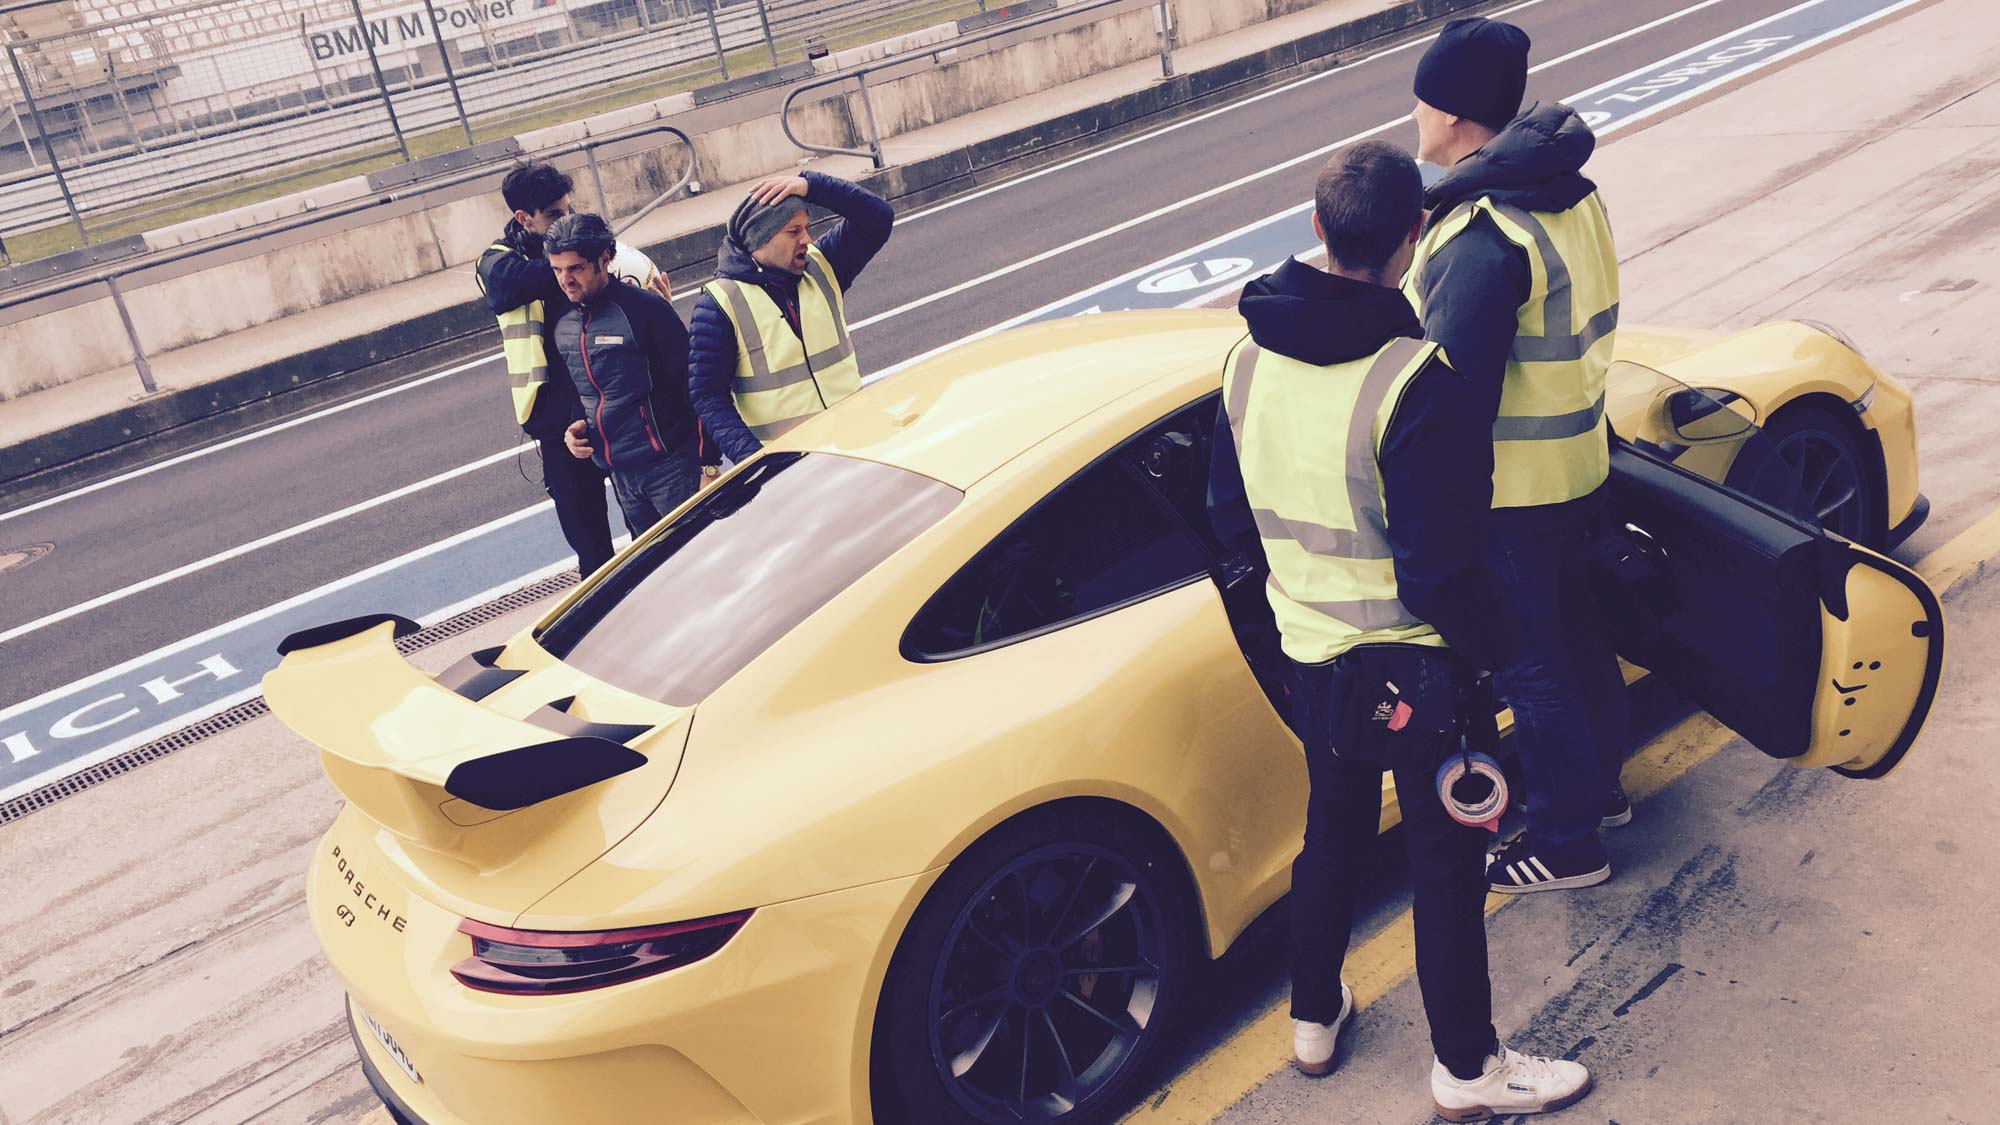 Dunlop - Superhero London - commercial production Germany, local team and equipment, Nürburgring